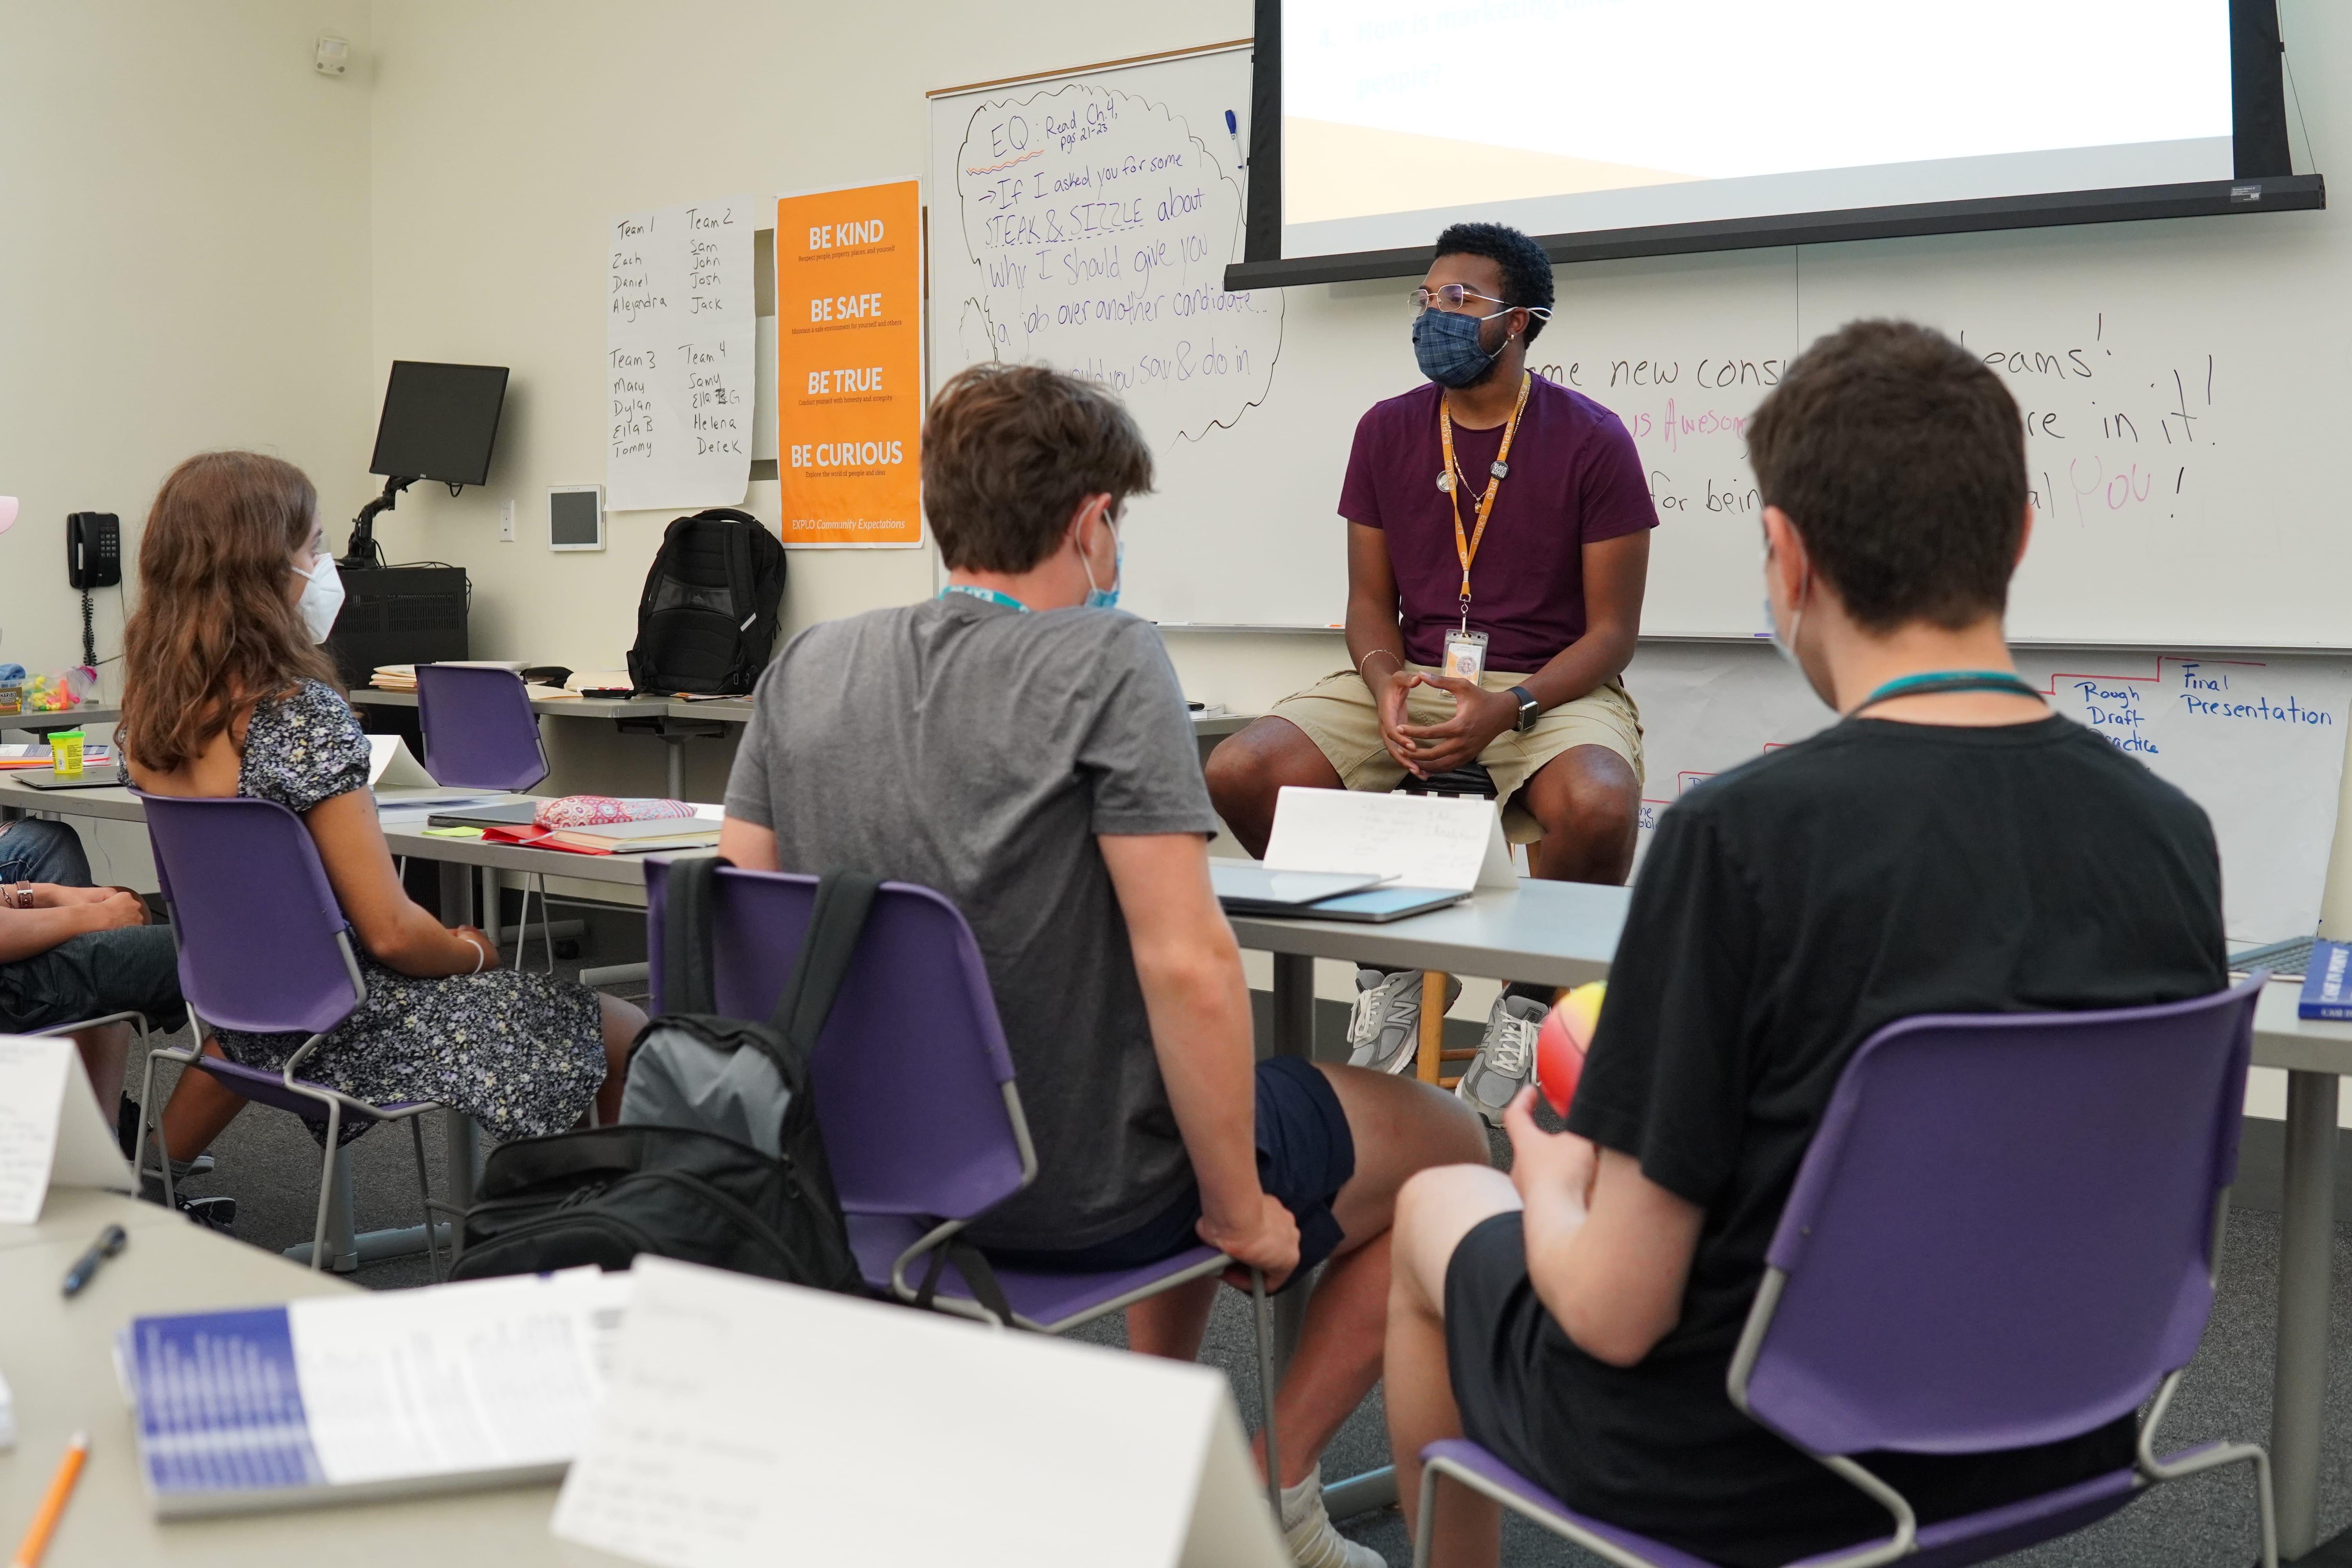 Teaching Fellow Justin sits at the front of the room and listens to students' strategies for reaching different target demographics.